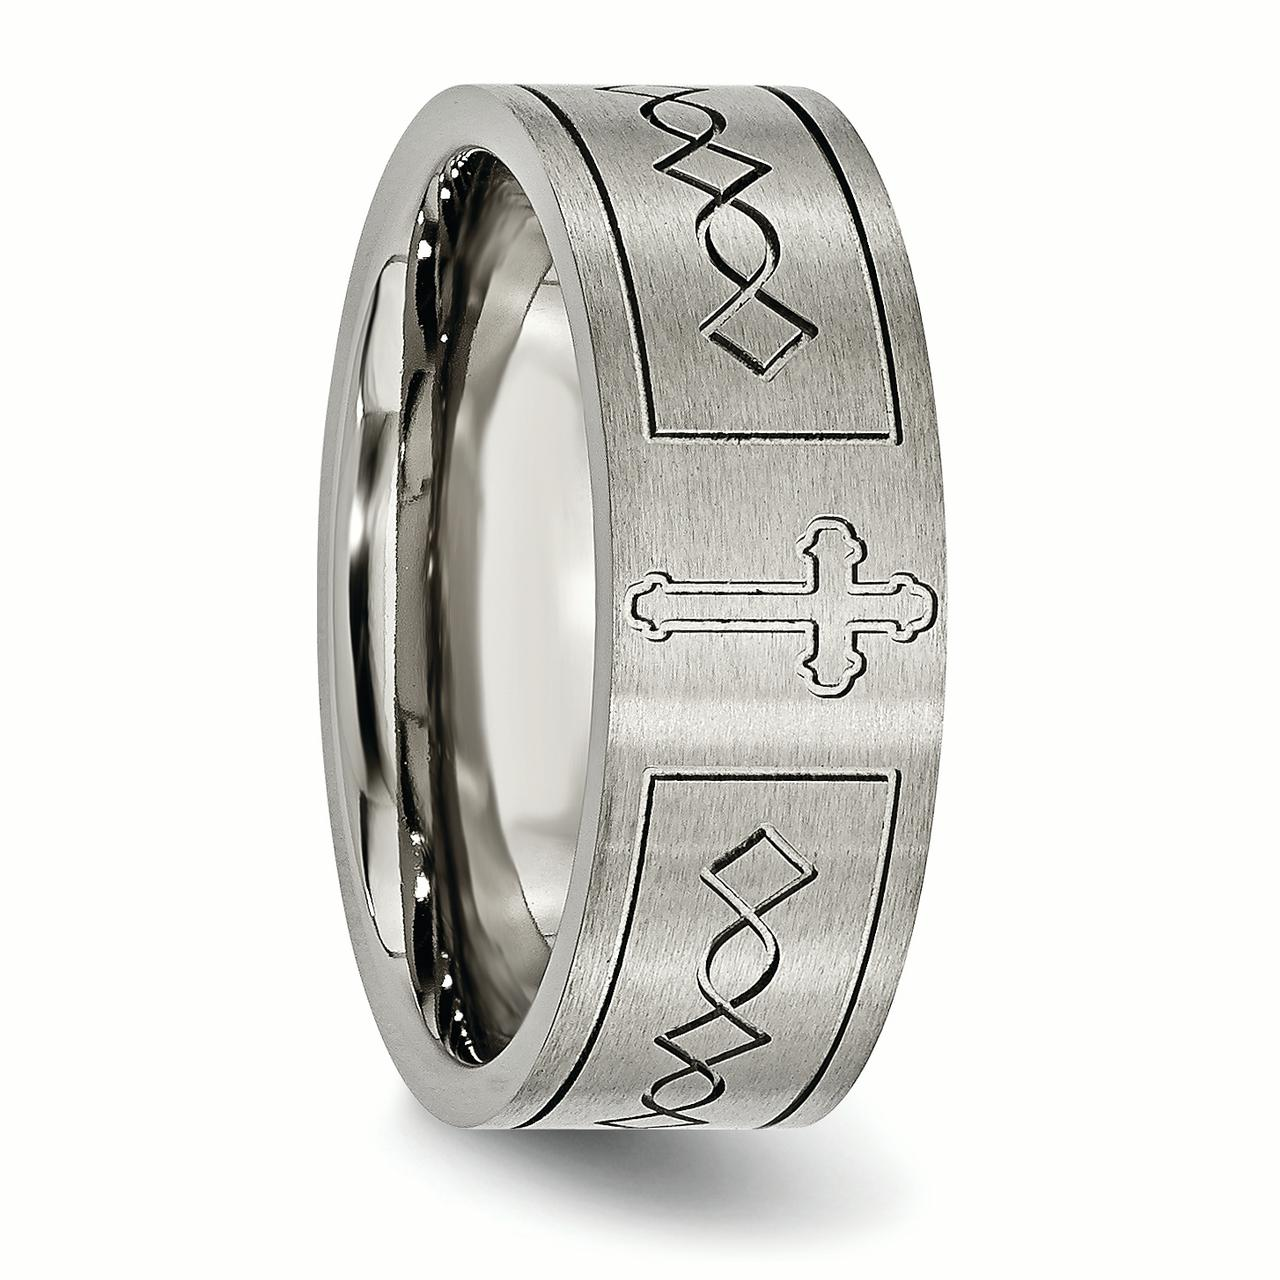 Titanium Cross Design Flat 8mm Brushed Band Best Quality Free Gift Box